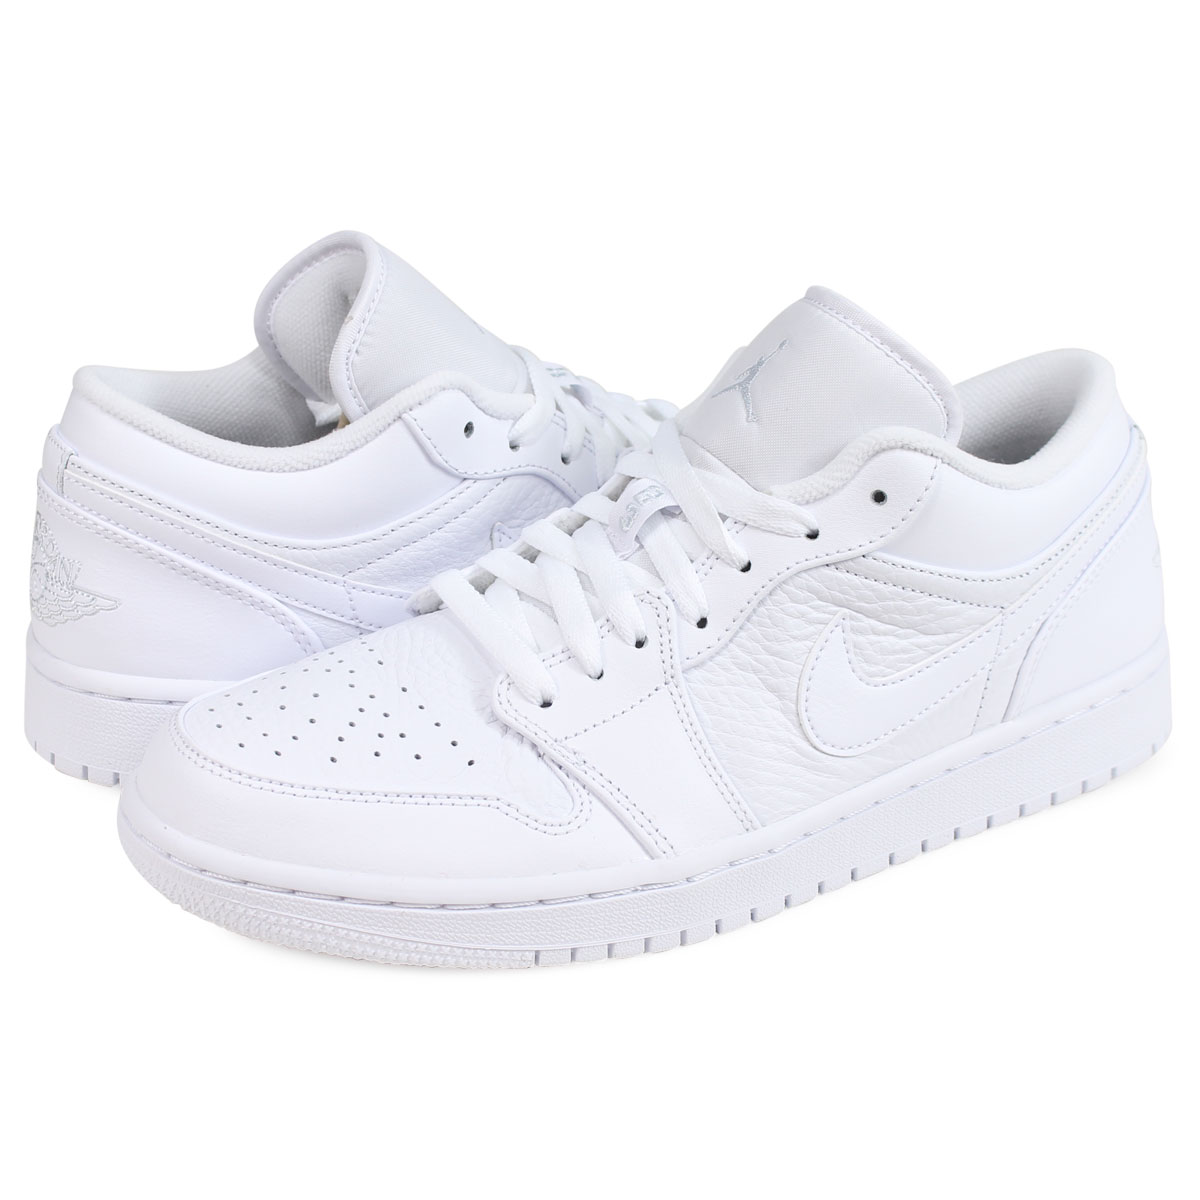 2d4994e3b78ed ALLSPORTS  Nike NIKE Air Jordan 1 sneakers men AIR JORDAN 1 LOW ...